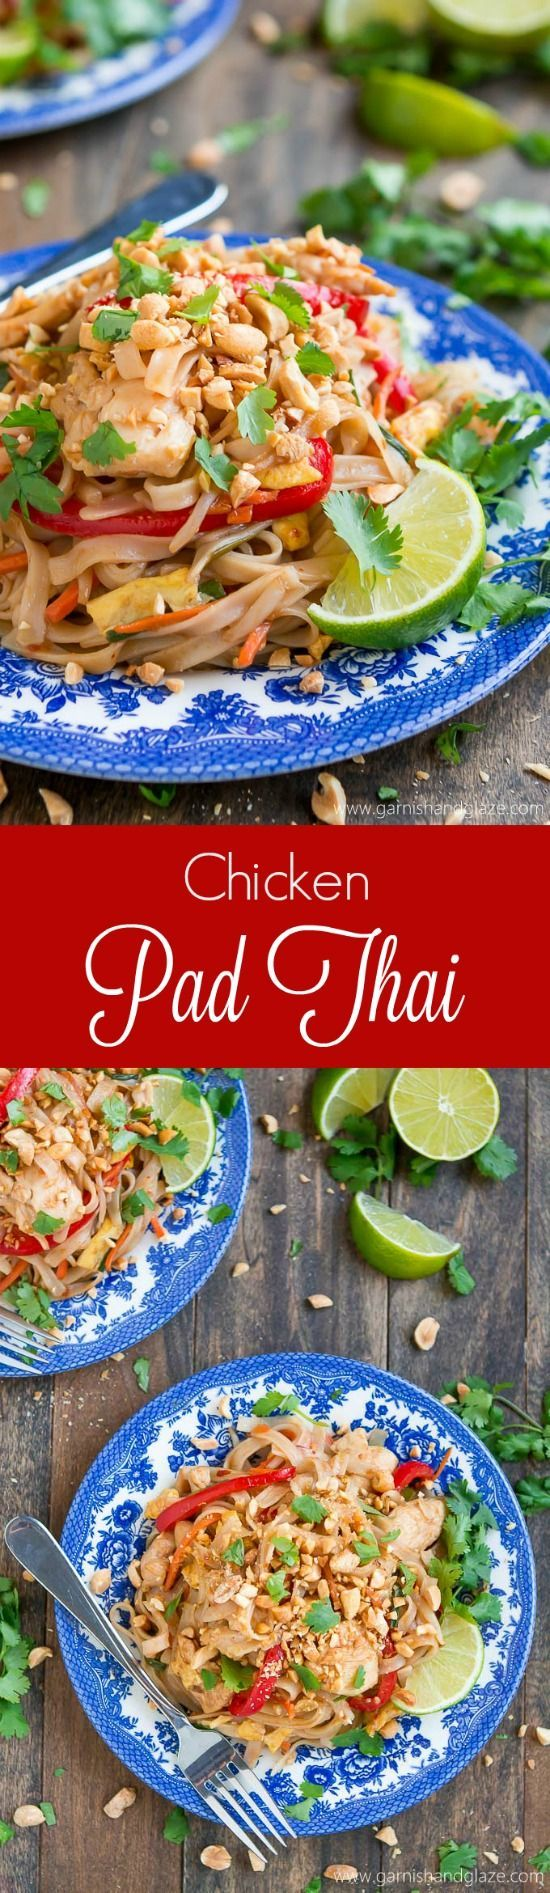 Enjoy Thai food at home with this quick and easy Chicken Pad Thai.